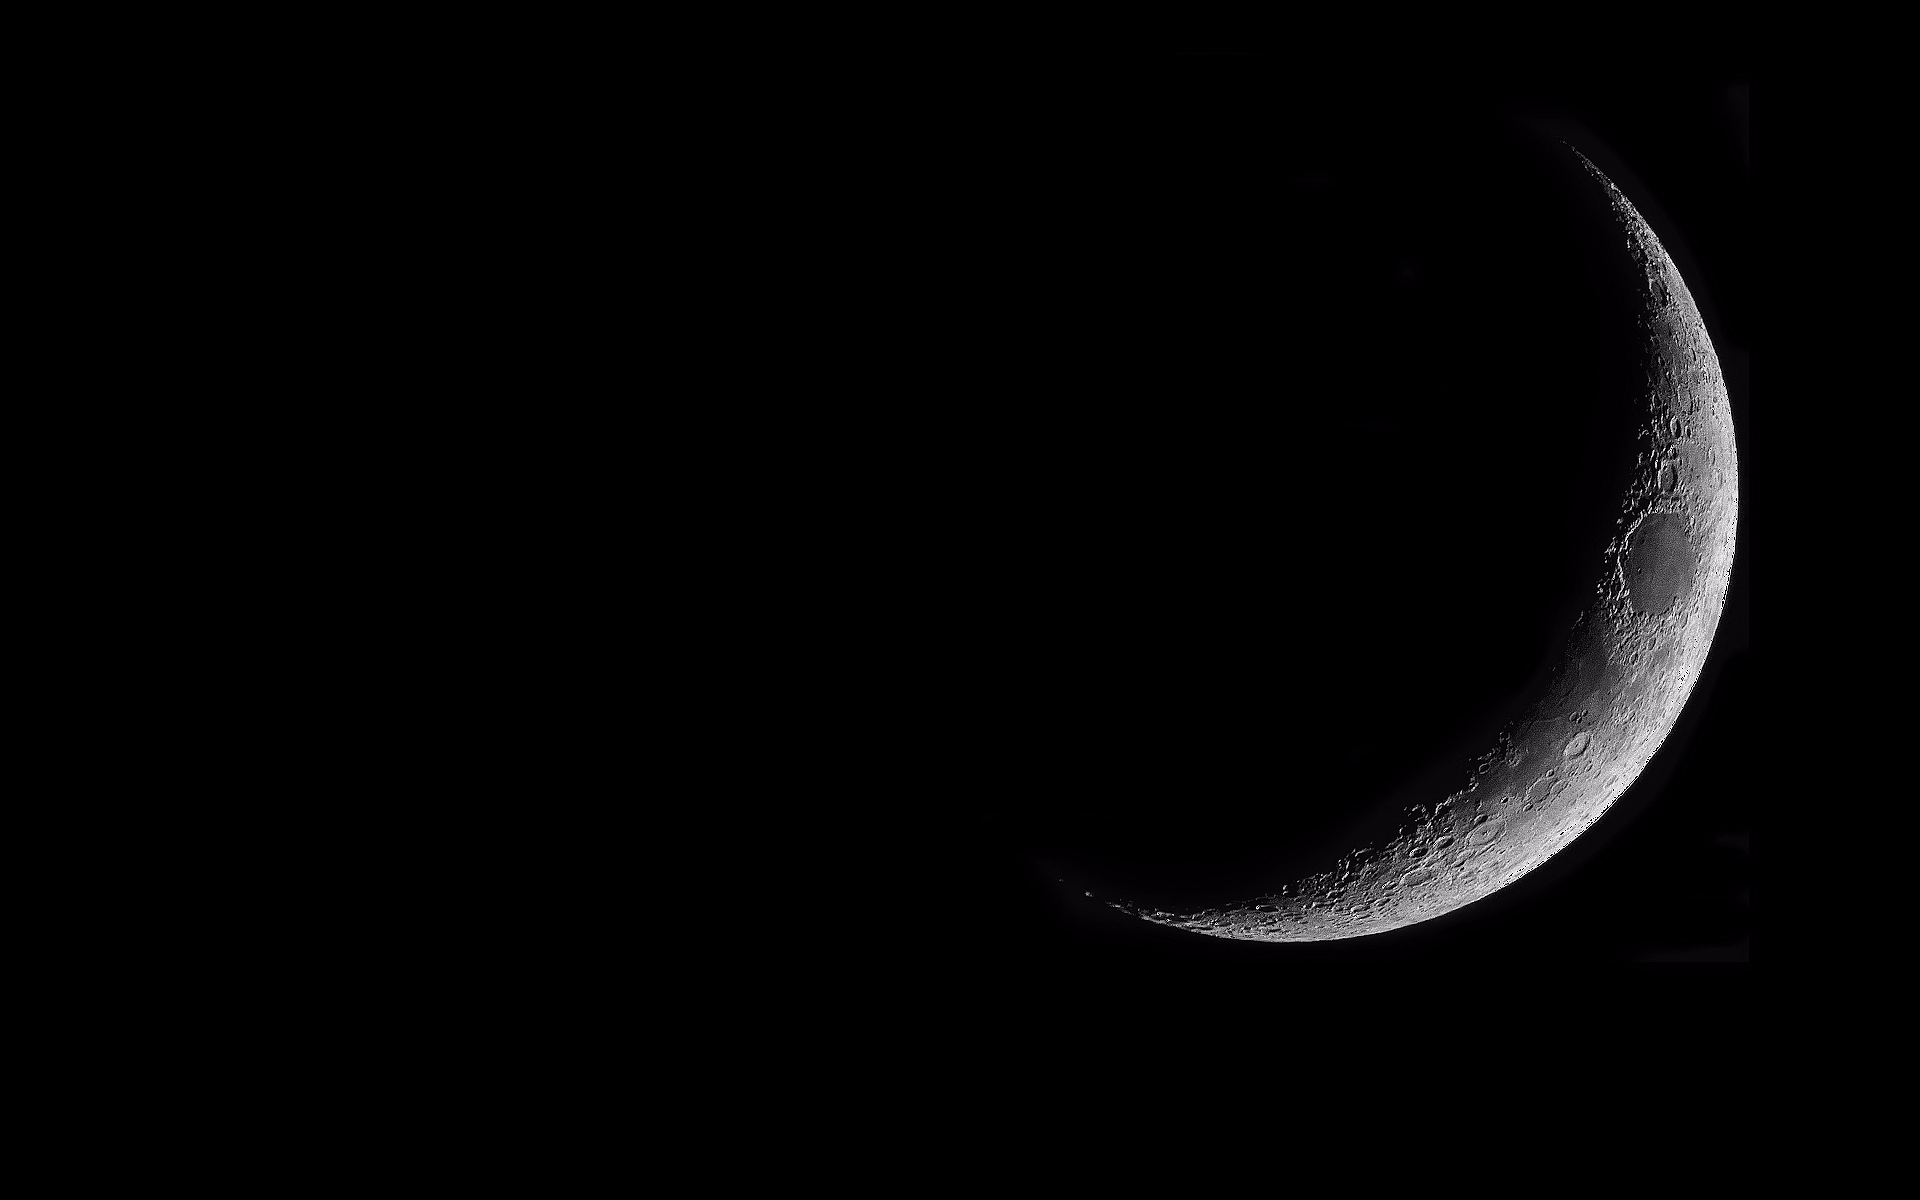 Crescent Moon Wallpaper 1920 X 1200.jpg